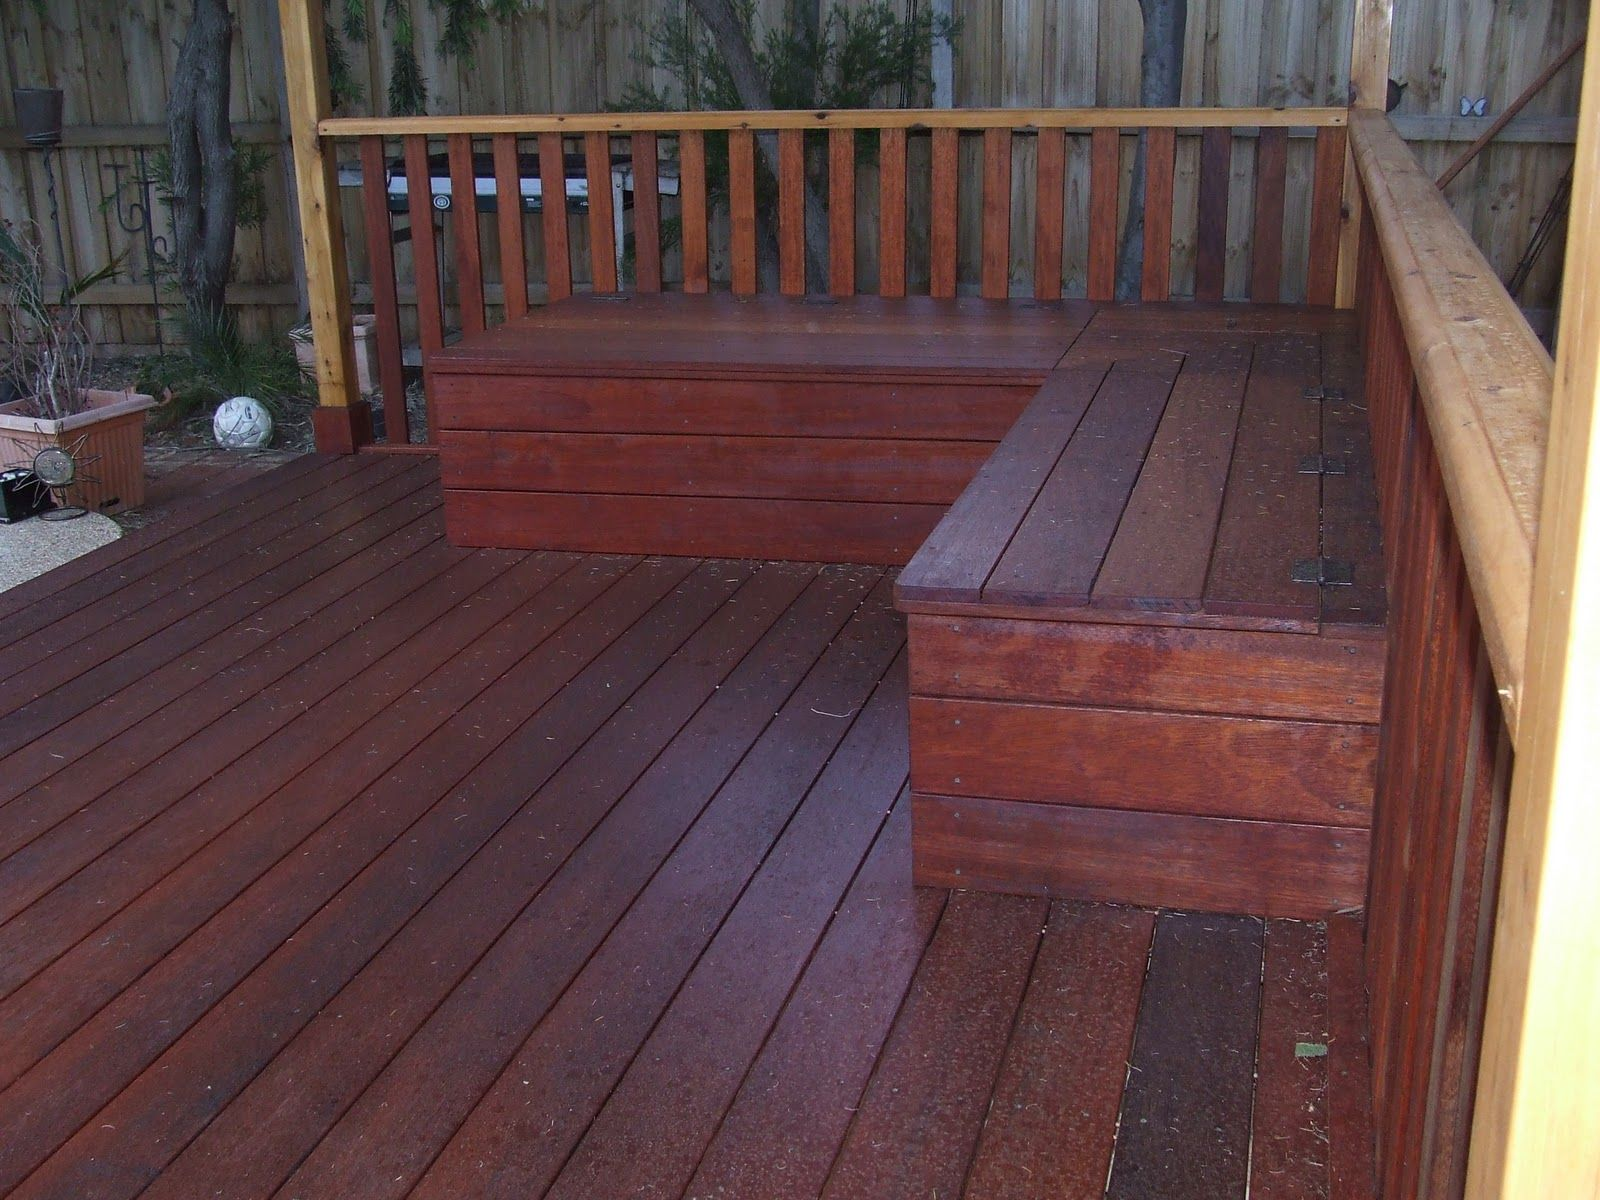 L Shaped Wood Decking Seating With Storage Google Search Outdoor Storage Bench Patio Storage Bench Patio Storage